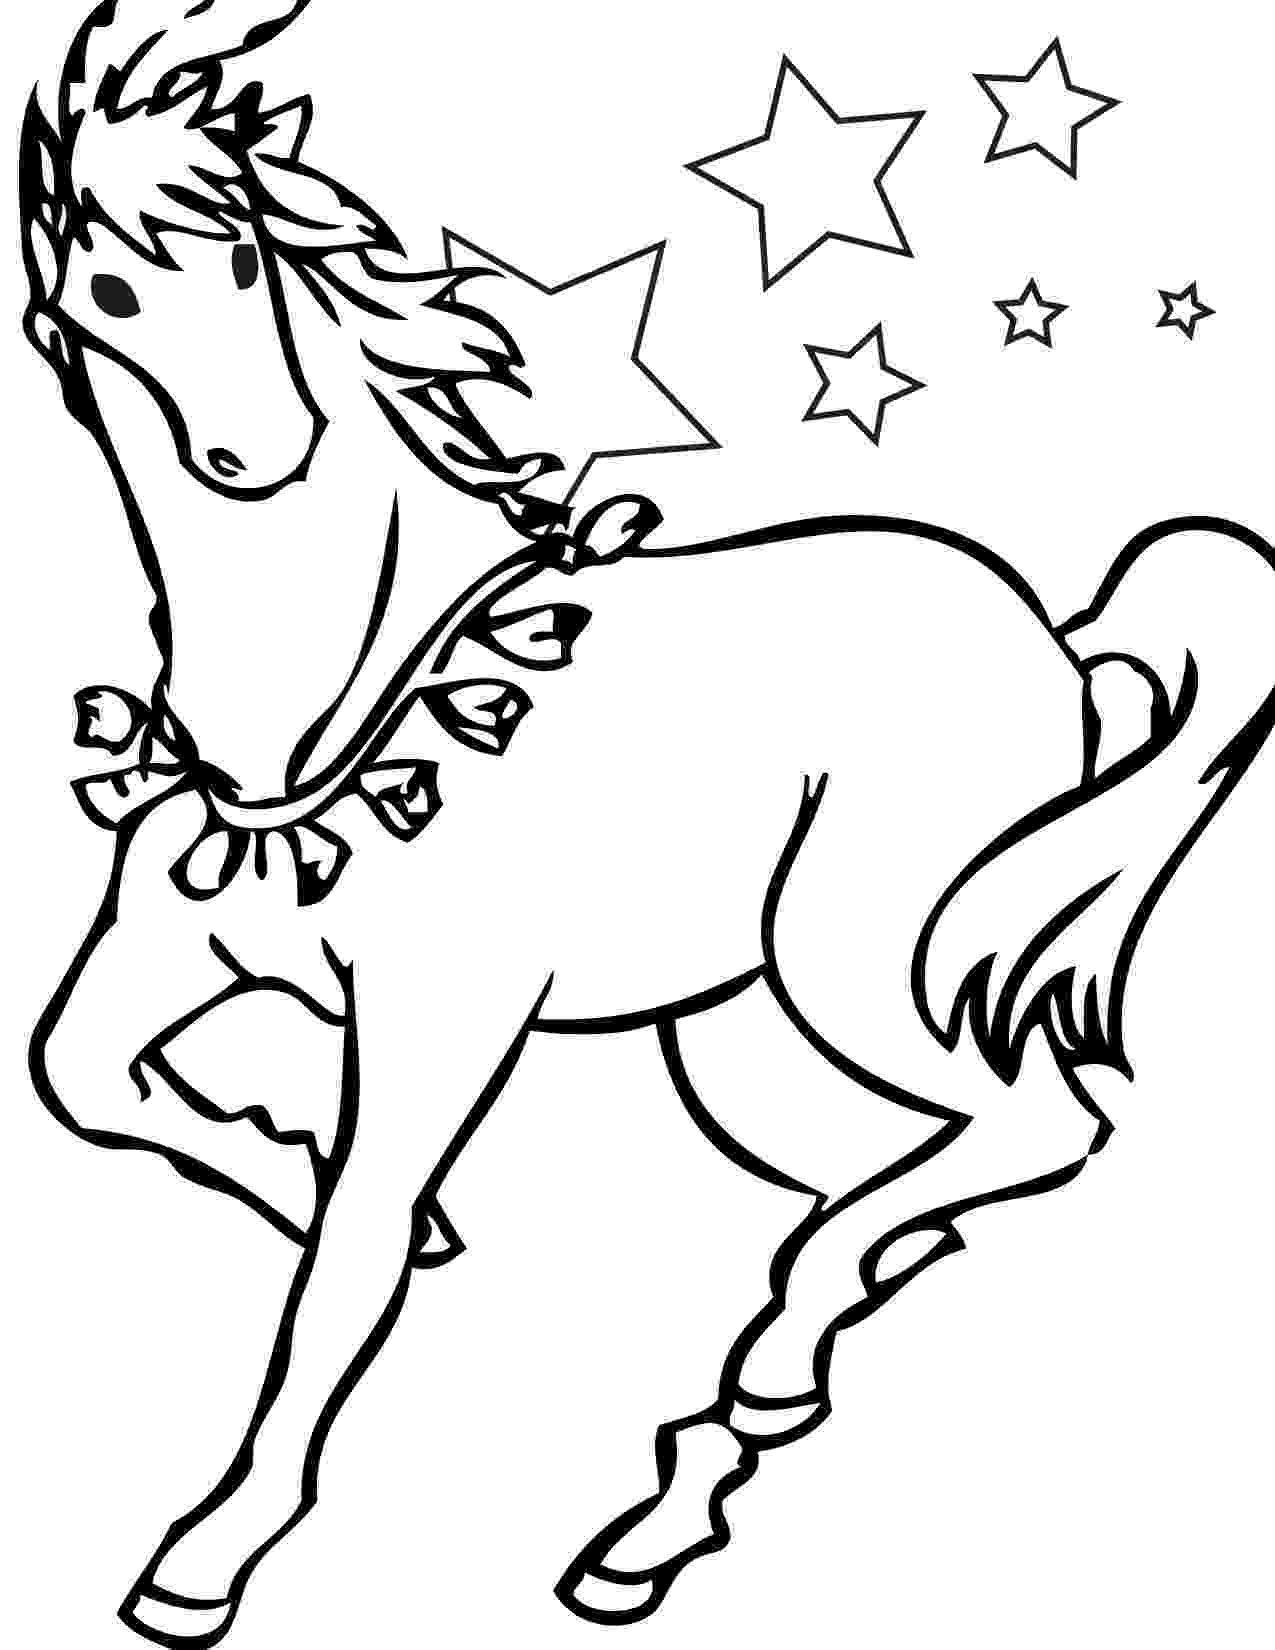 picture of horses to color horse and rider pictures clipartsco picture of color to horses